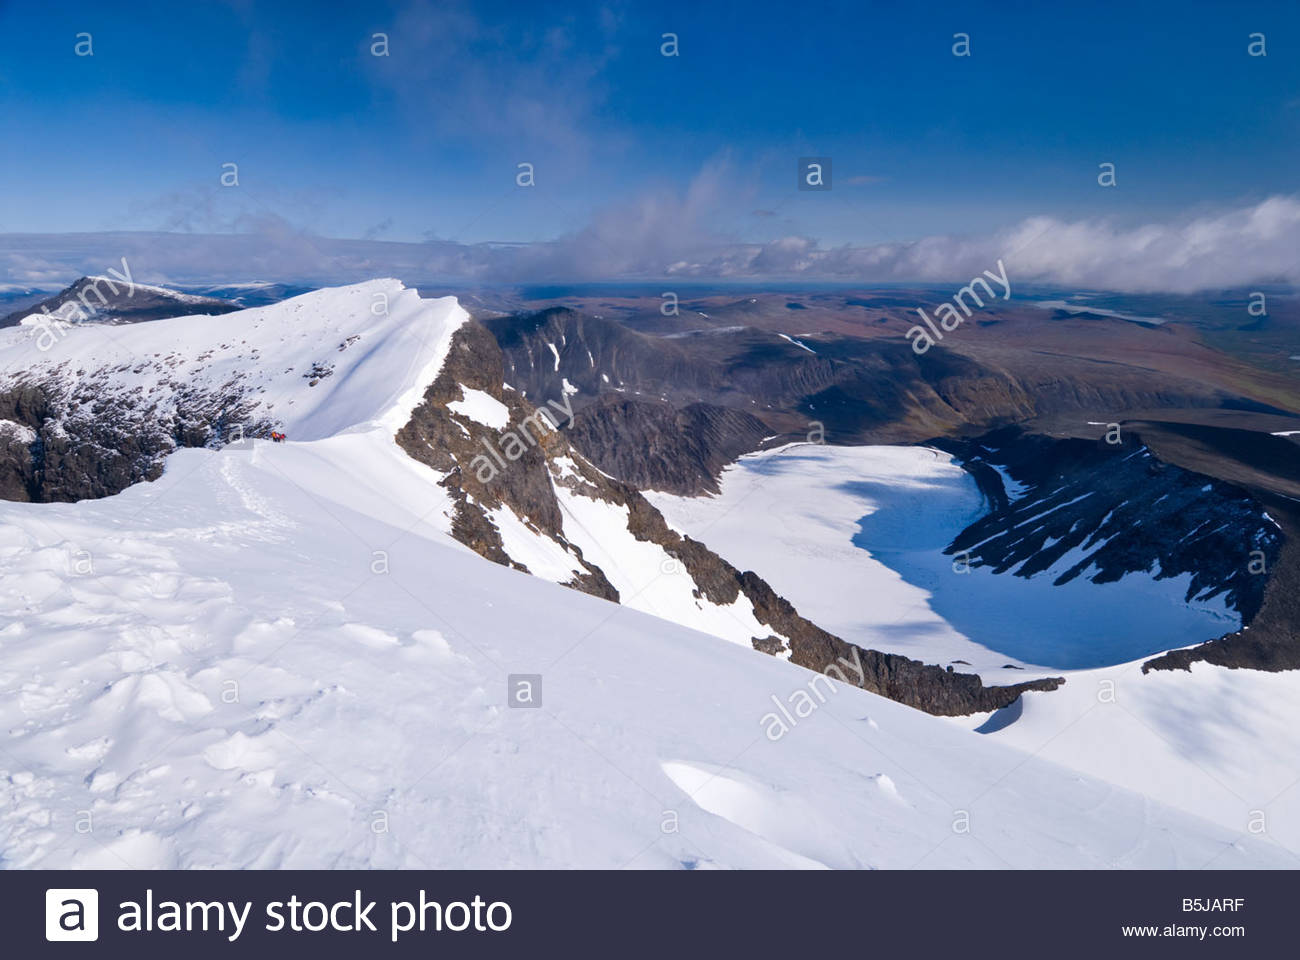 Looking towards the north summit from the top of Kebnekaise, Sweden's highest mountain. - Stock Image